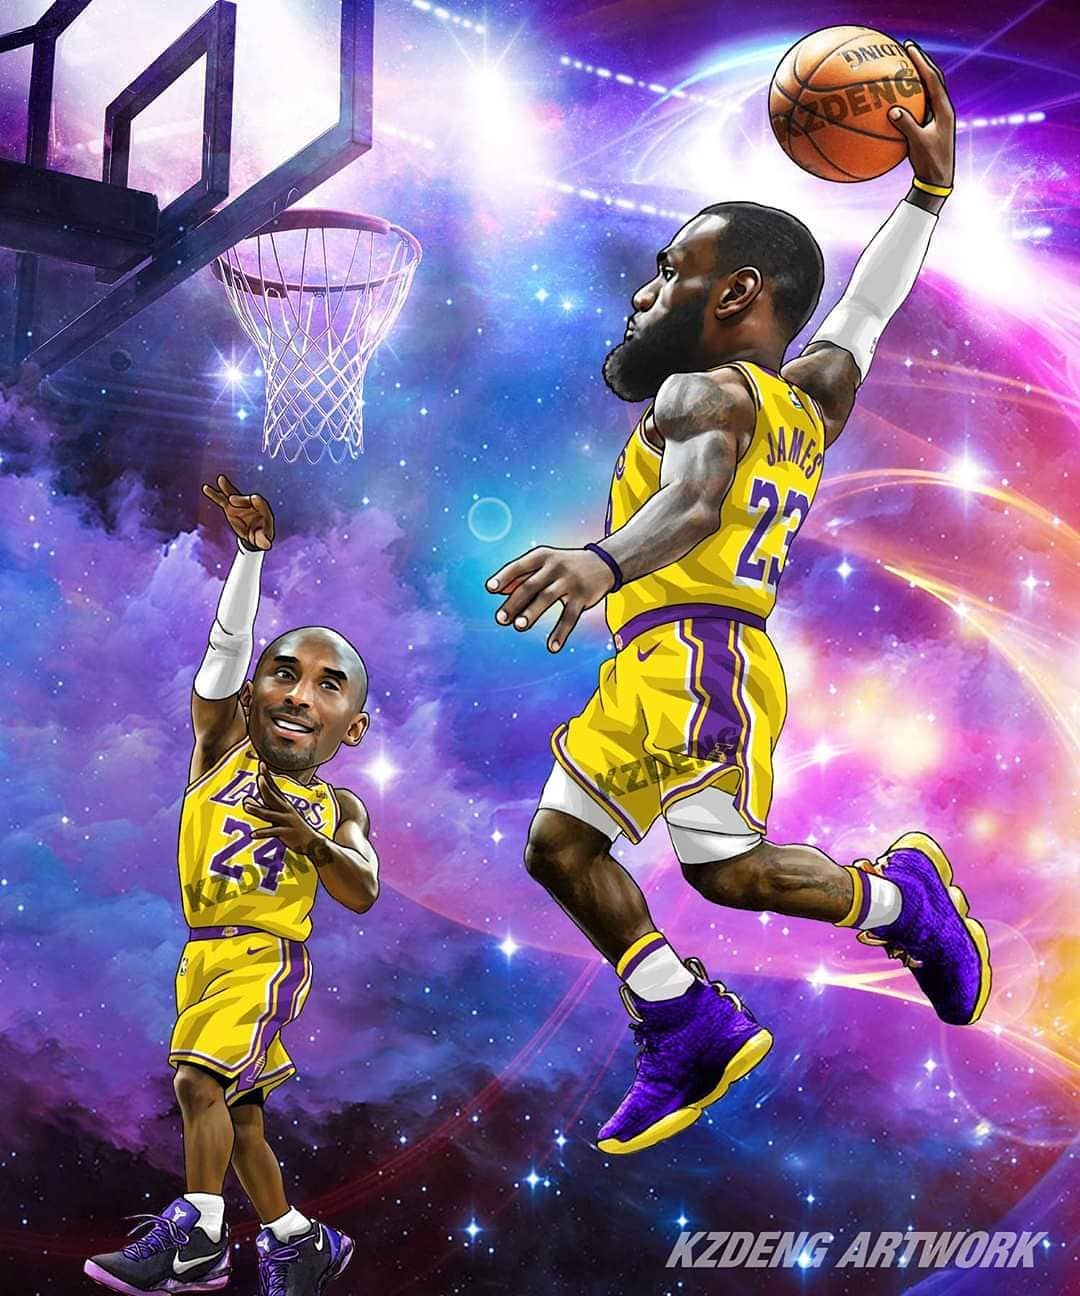 Pin By Frank Reveles On Lakers Lebron James Lakers Lebron James Jr King Lebron James Kobe and lebron lakers wallpaper iphone